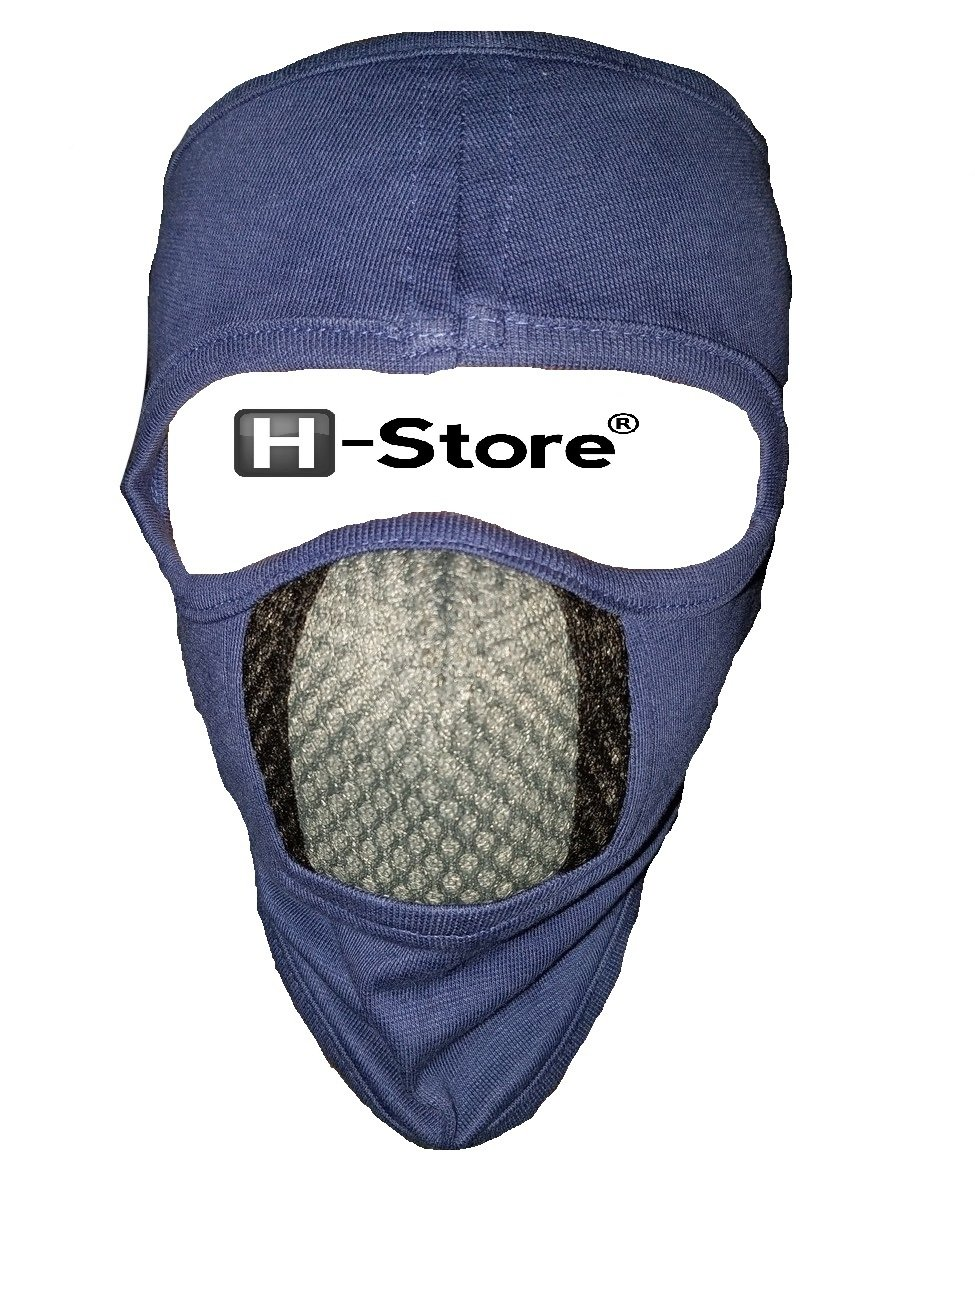 eb5e5b8a239 H-Store Ninja Grey With Grey   Black Filter Bike Riders Anti Pollution Dust  Sun Protection Full Face Cover Mask Bike Riders (Grey)  Amazon.in  Car   ...